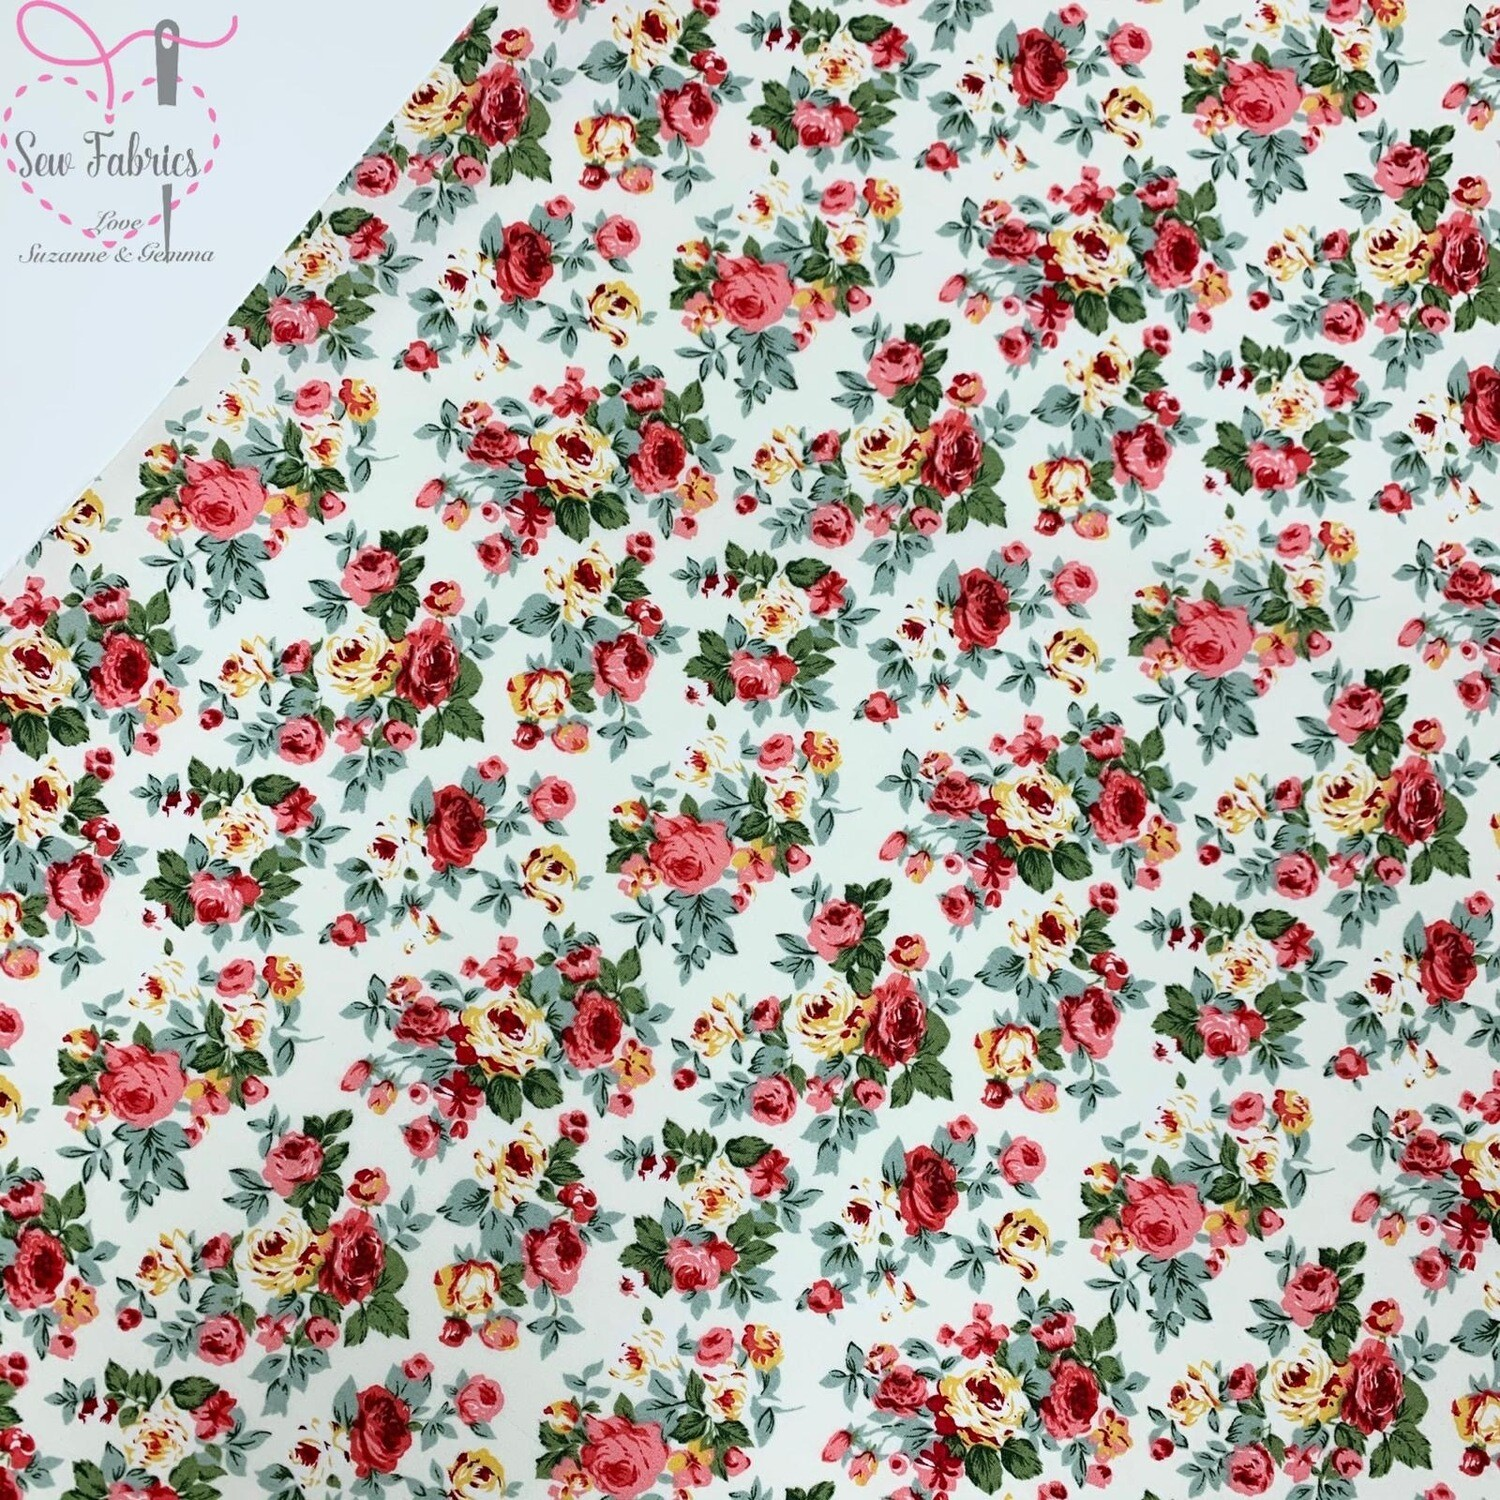 Rose and Hubble Ivory Bunch of Peonies Floral Fabric Cream Vintage Floral 100% Cotton Poplin Flower Material Sewing